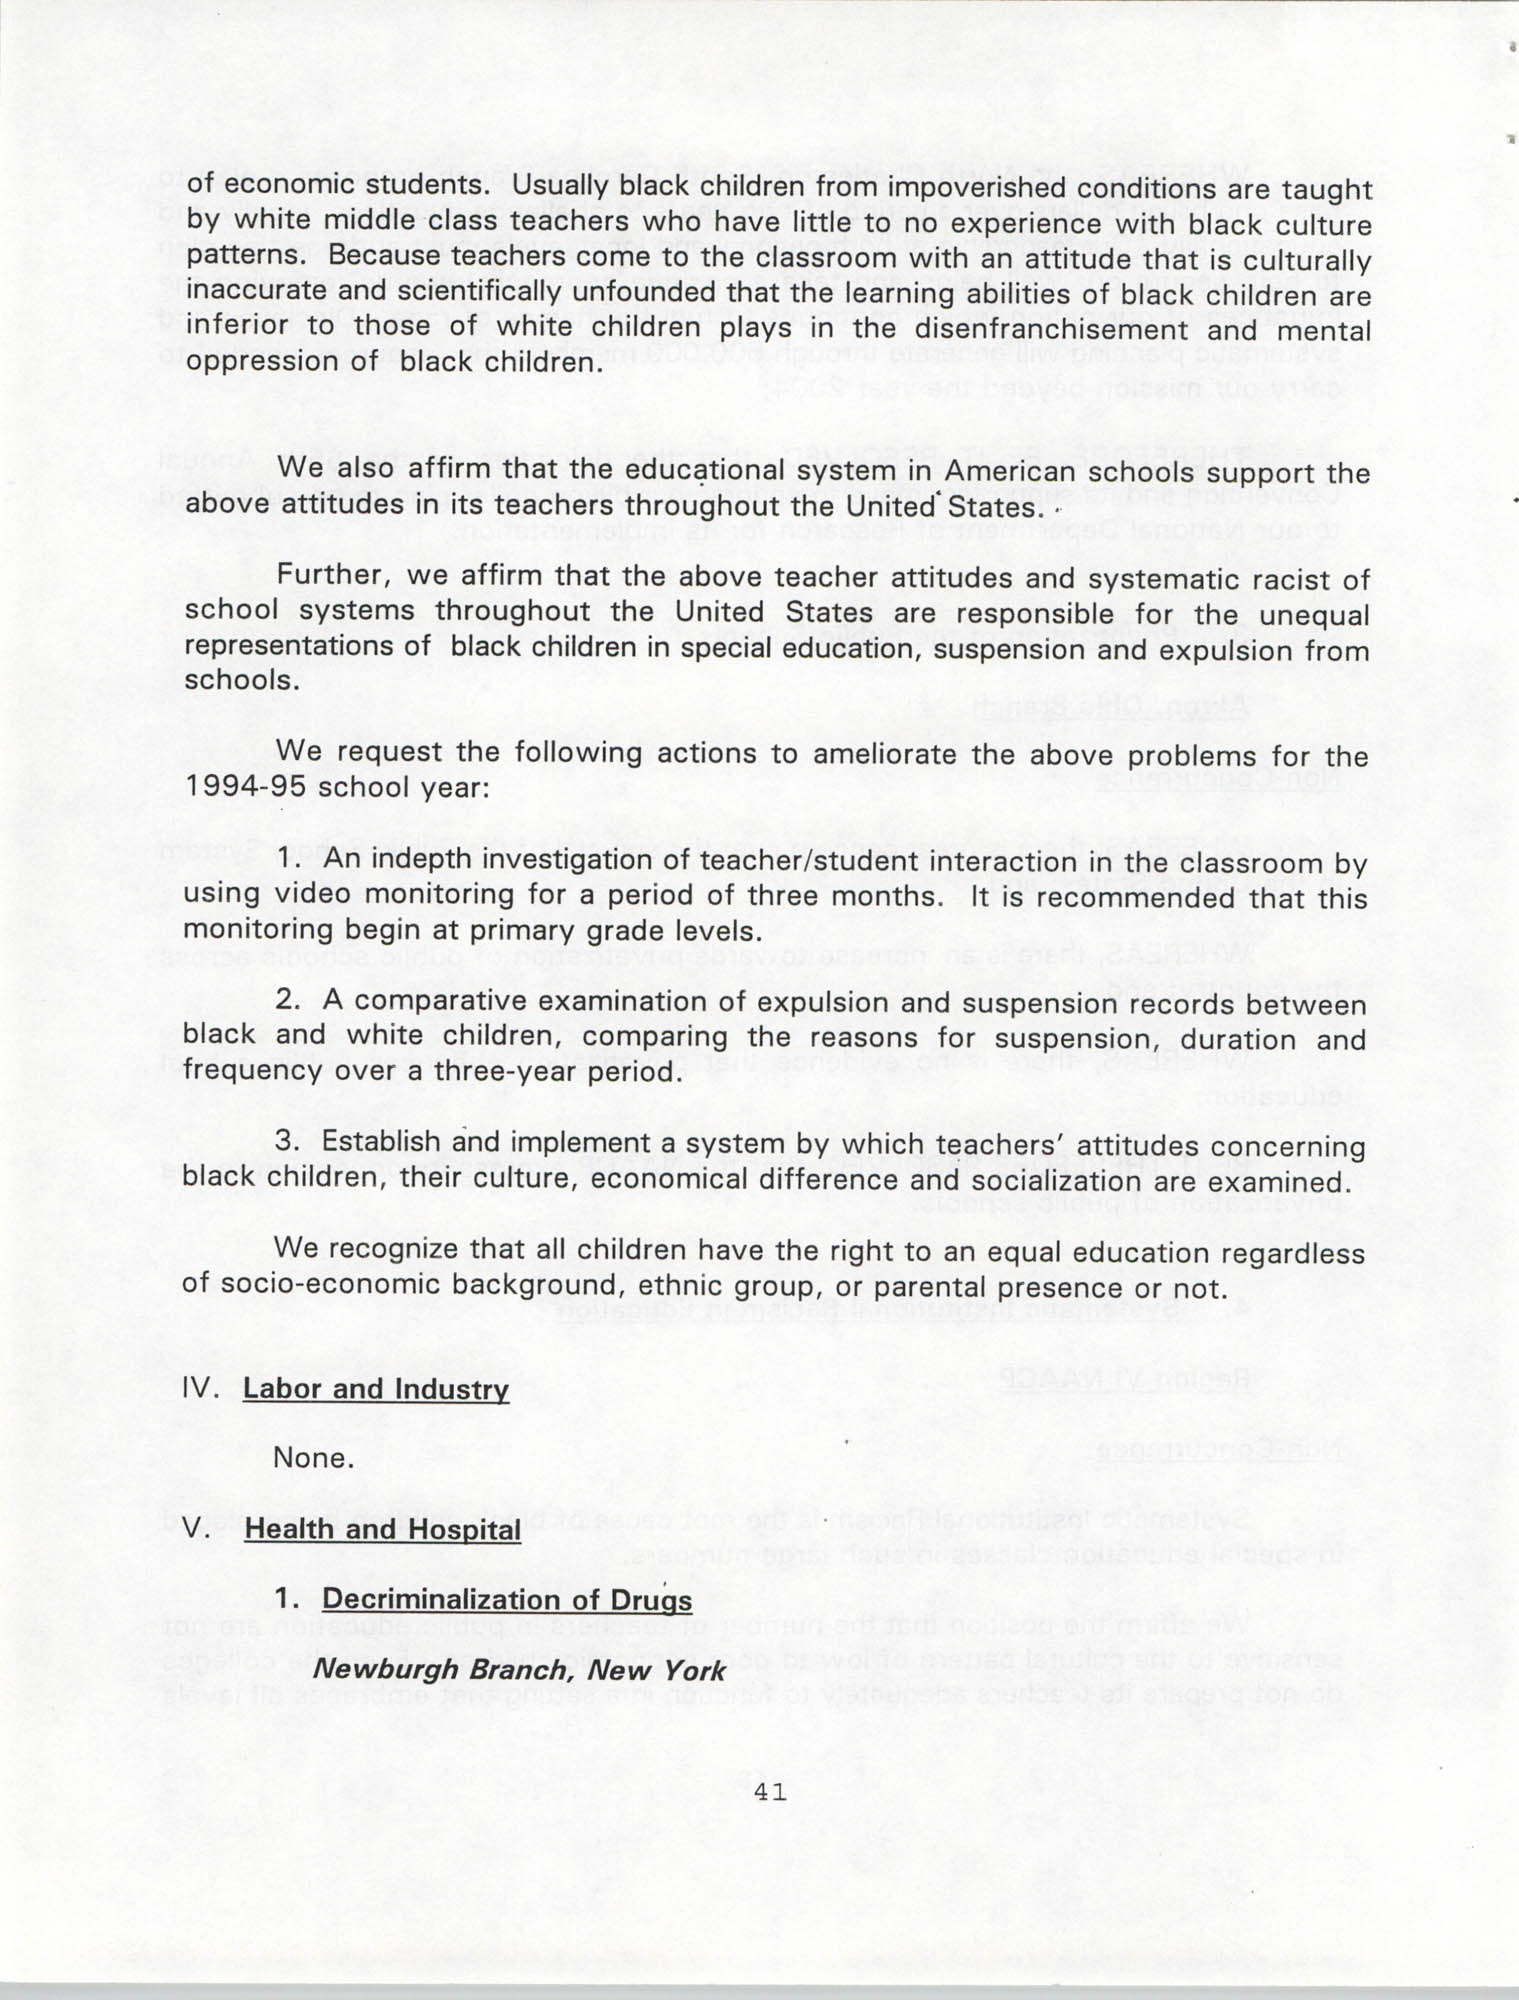 Resolutions Submitted Under Article X, Section 2 of the Constitution of the NAACP, 1994, Page 41